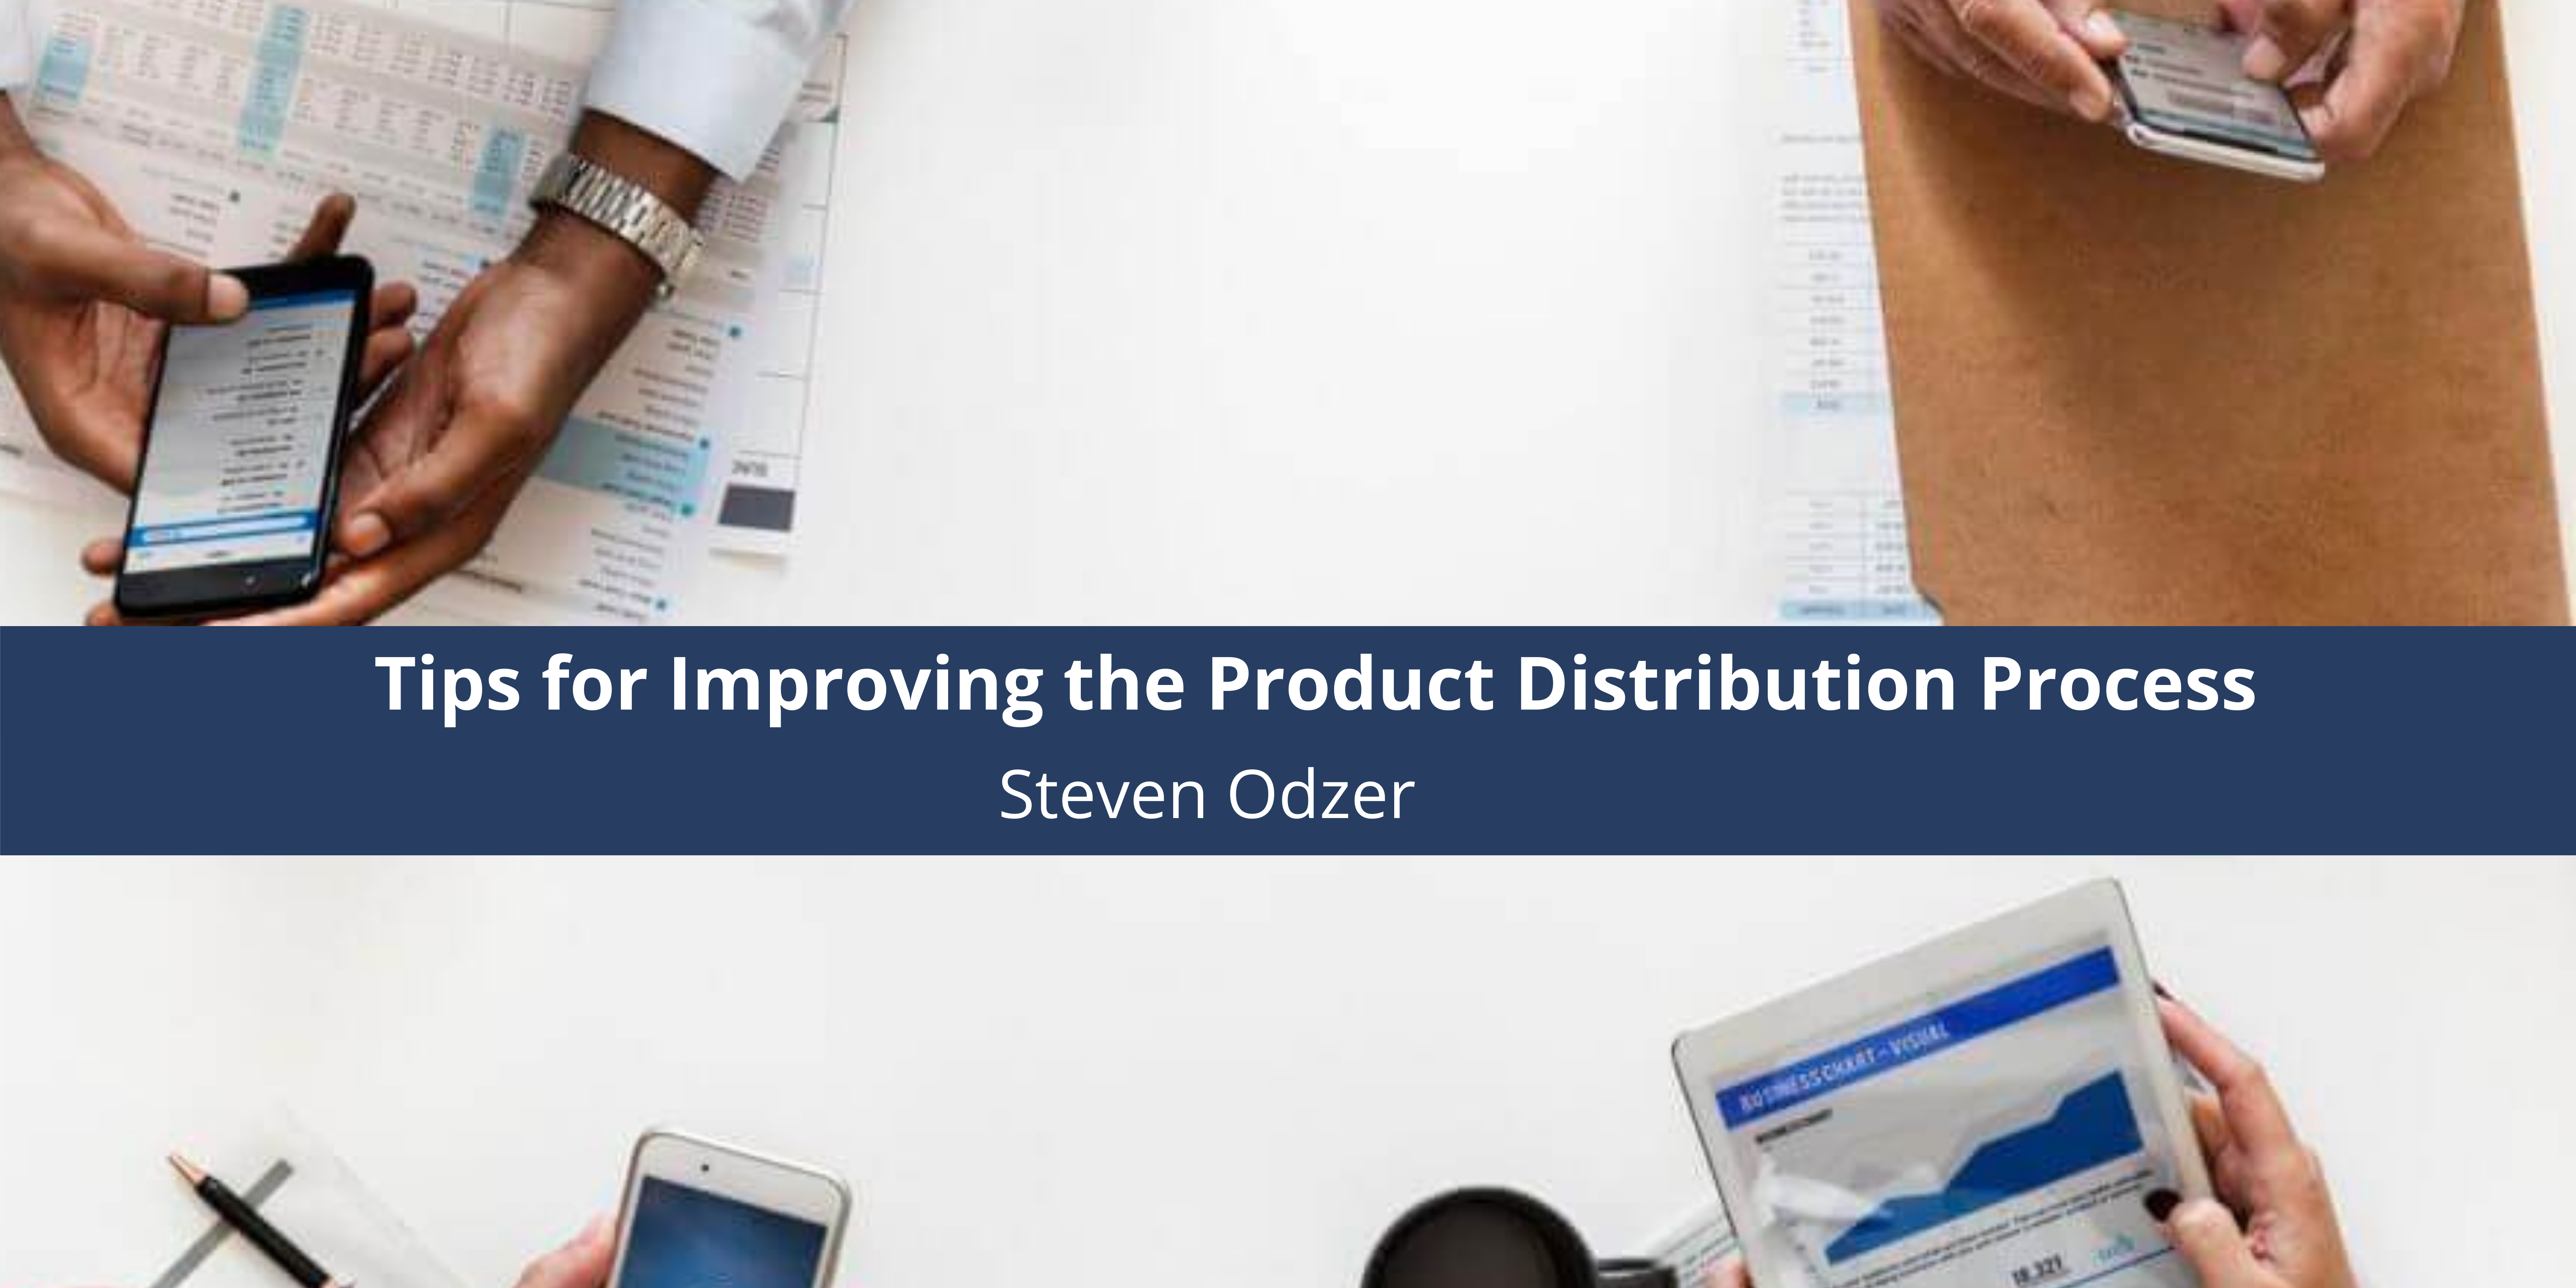 Business Owner Steven Odzer Provides Tips for Improving the Product Distribution Process